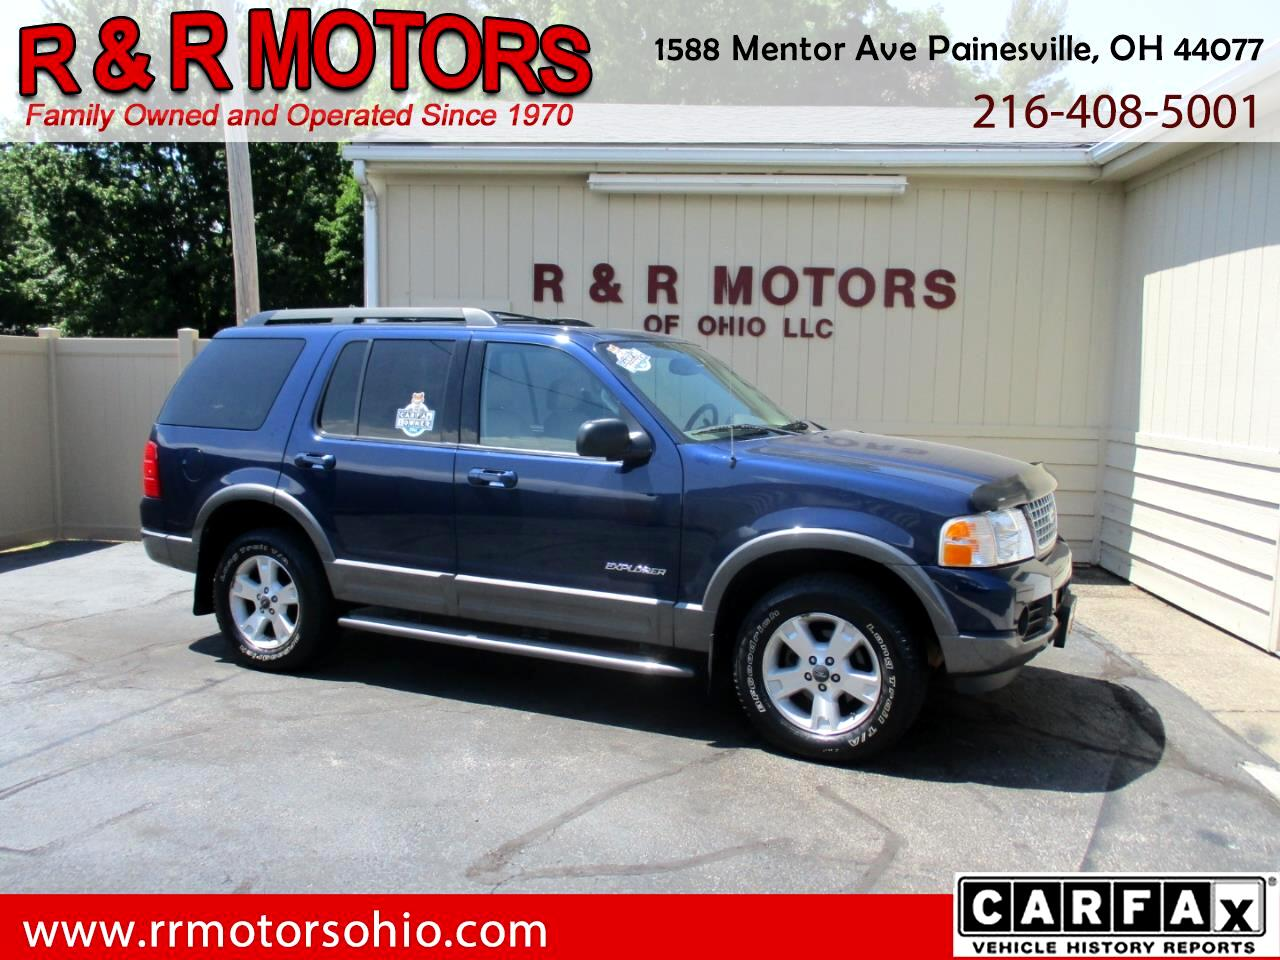 Ford Explorer XLT 4.0L 4WD 2005